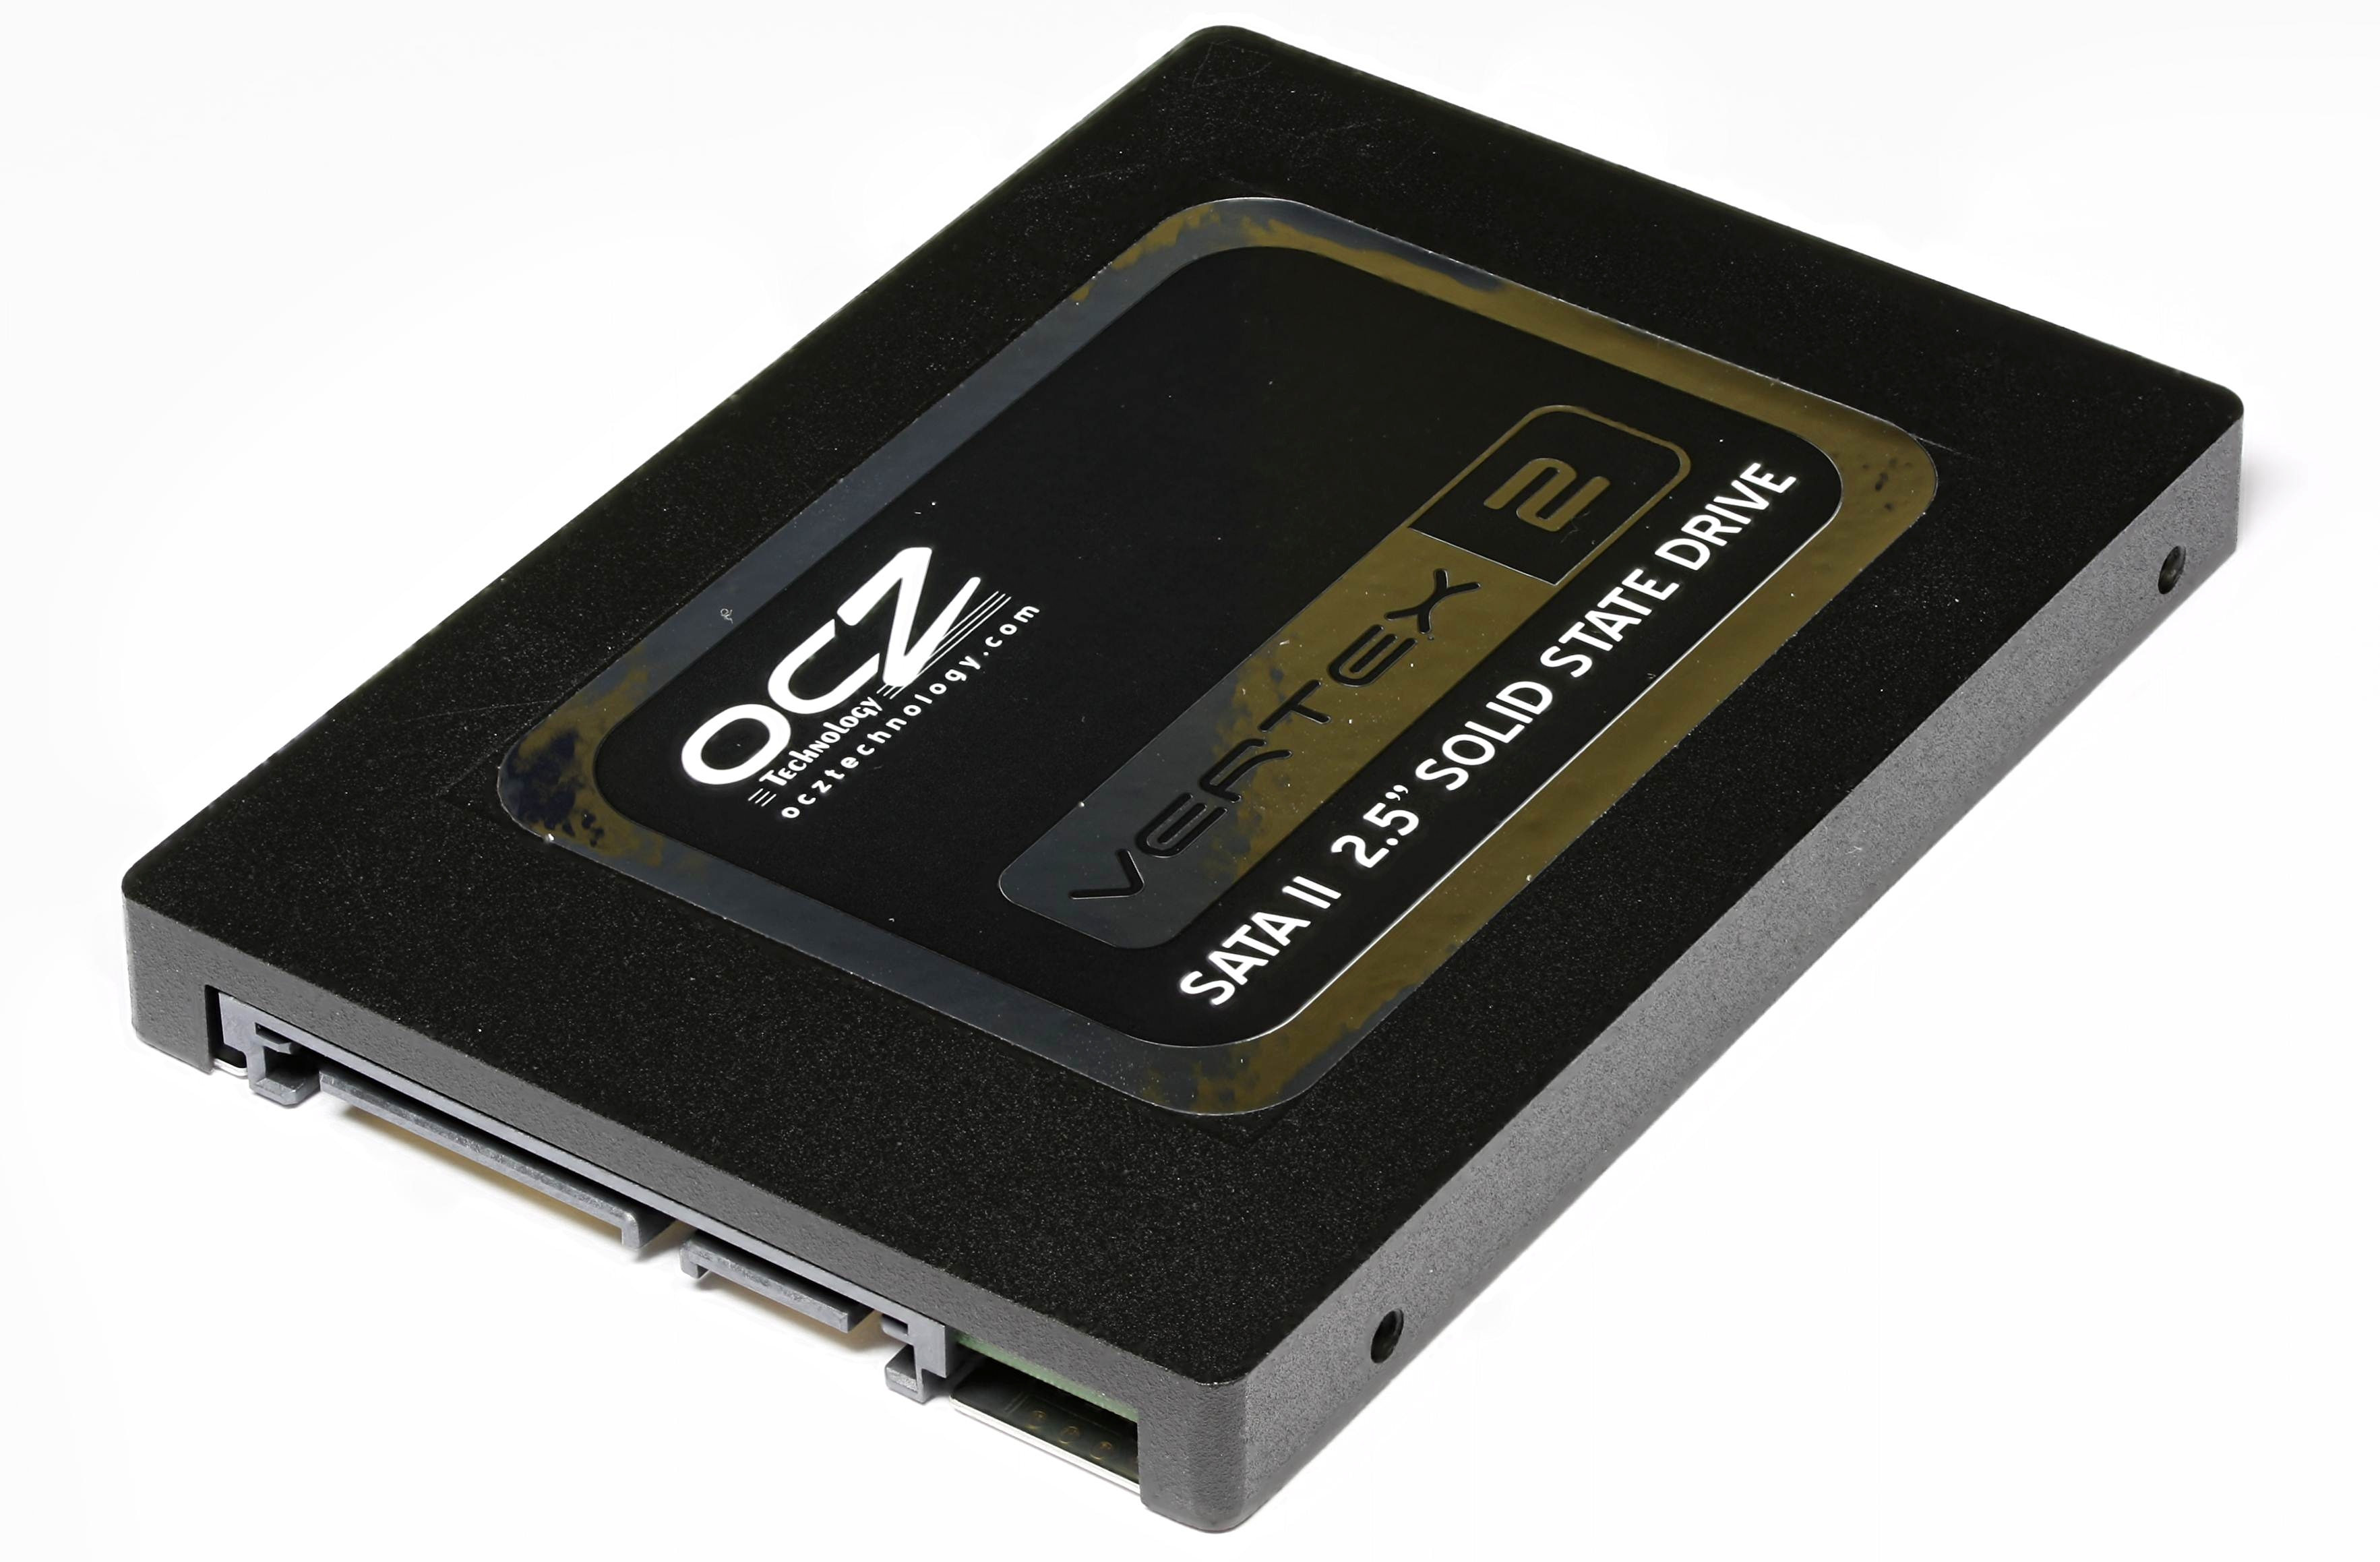 Solid State Drive Wikipedia The Free Encyclopedia | solid state drive wikipedia the free ...